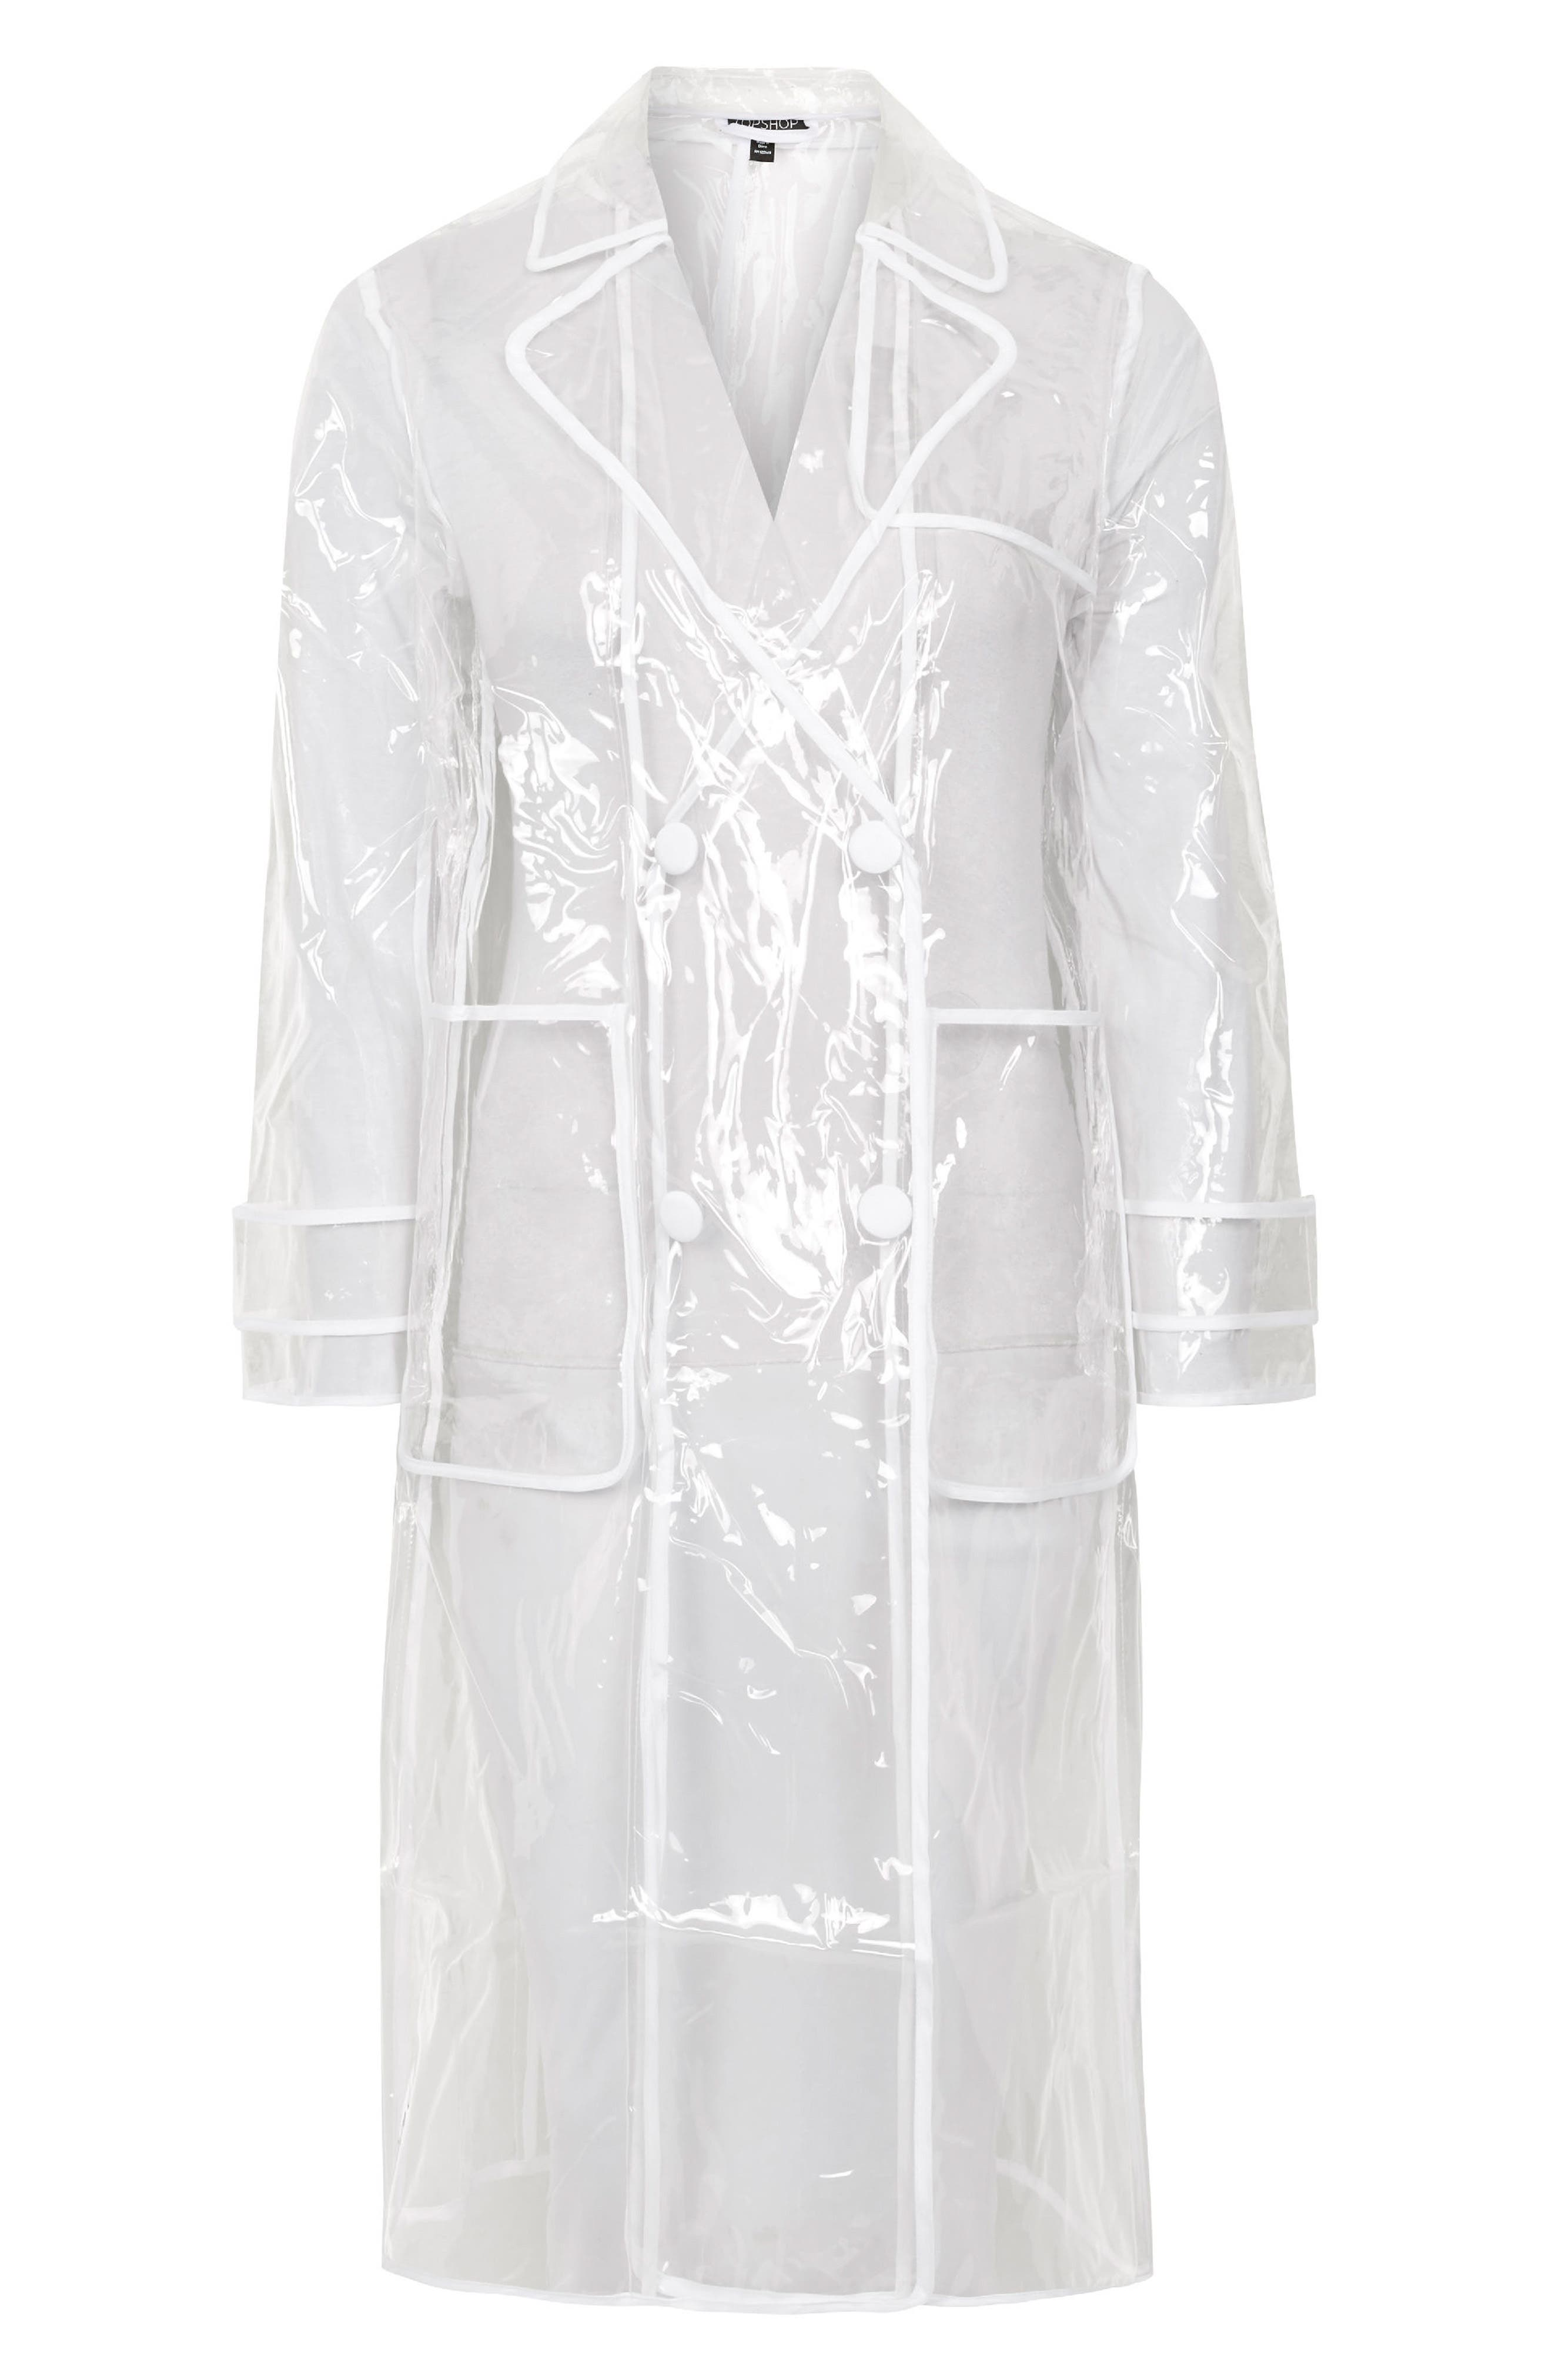 TOPSHOP,                             Clear Vinyl Trench Coat,                             Alternate thumbnail 4, color,                             000